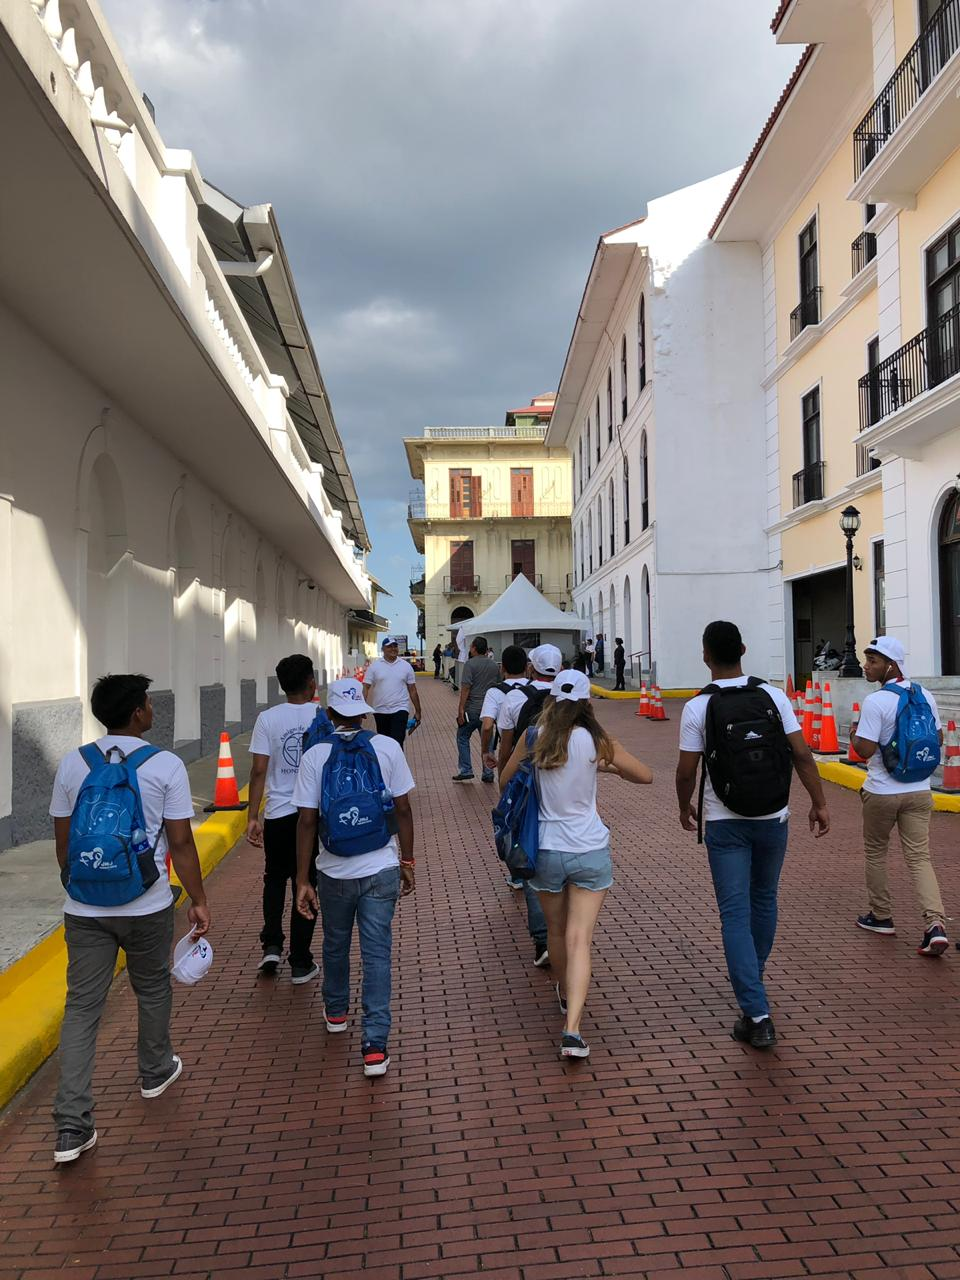 The group enjoyed having time to not only experience World Youth Day but also to explore Panama City.